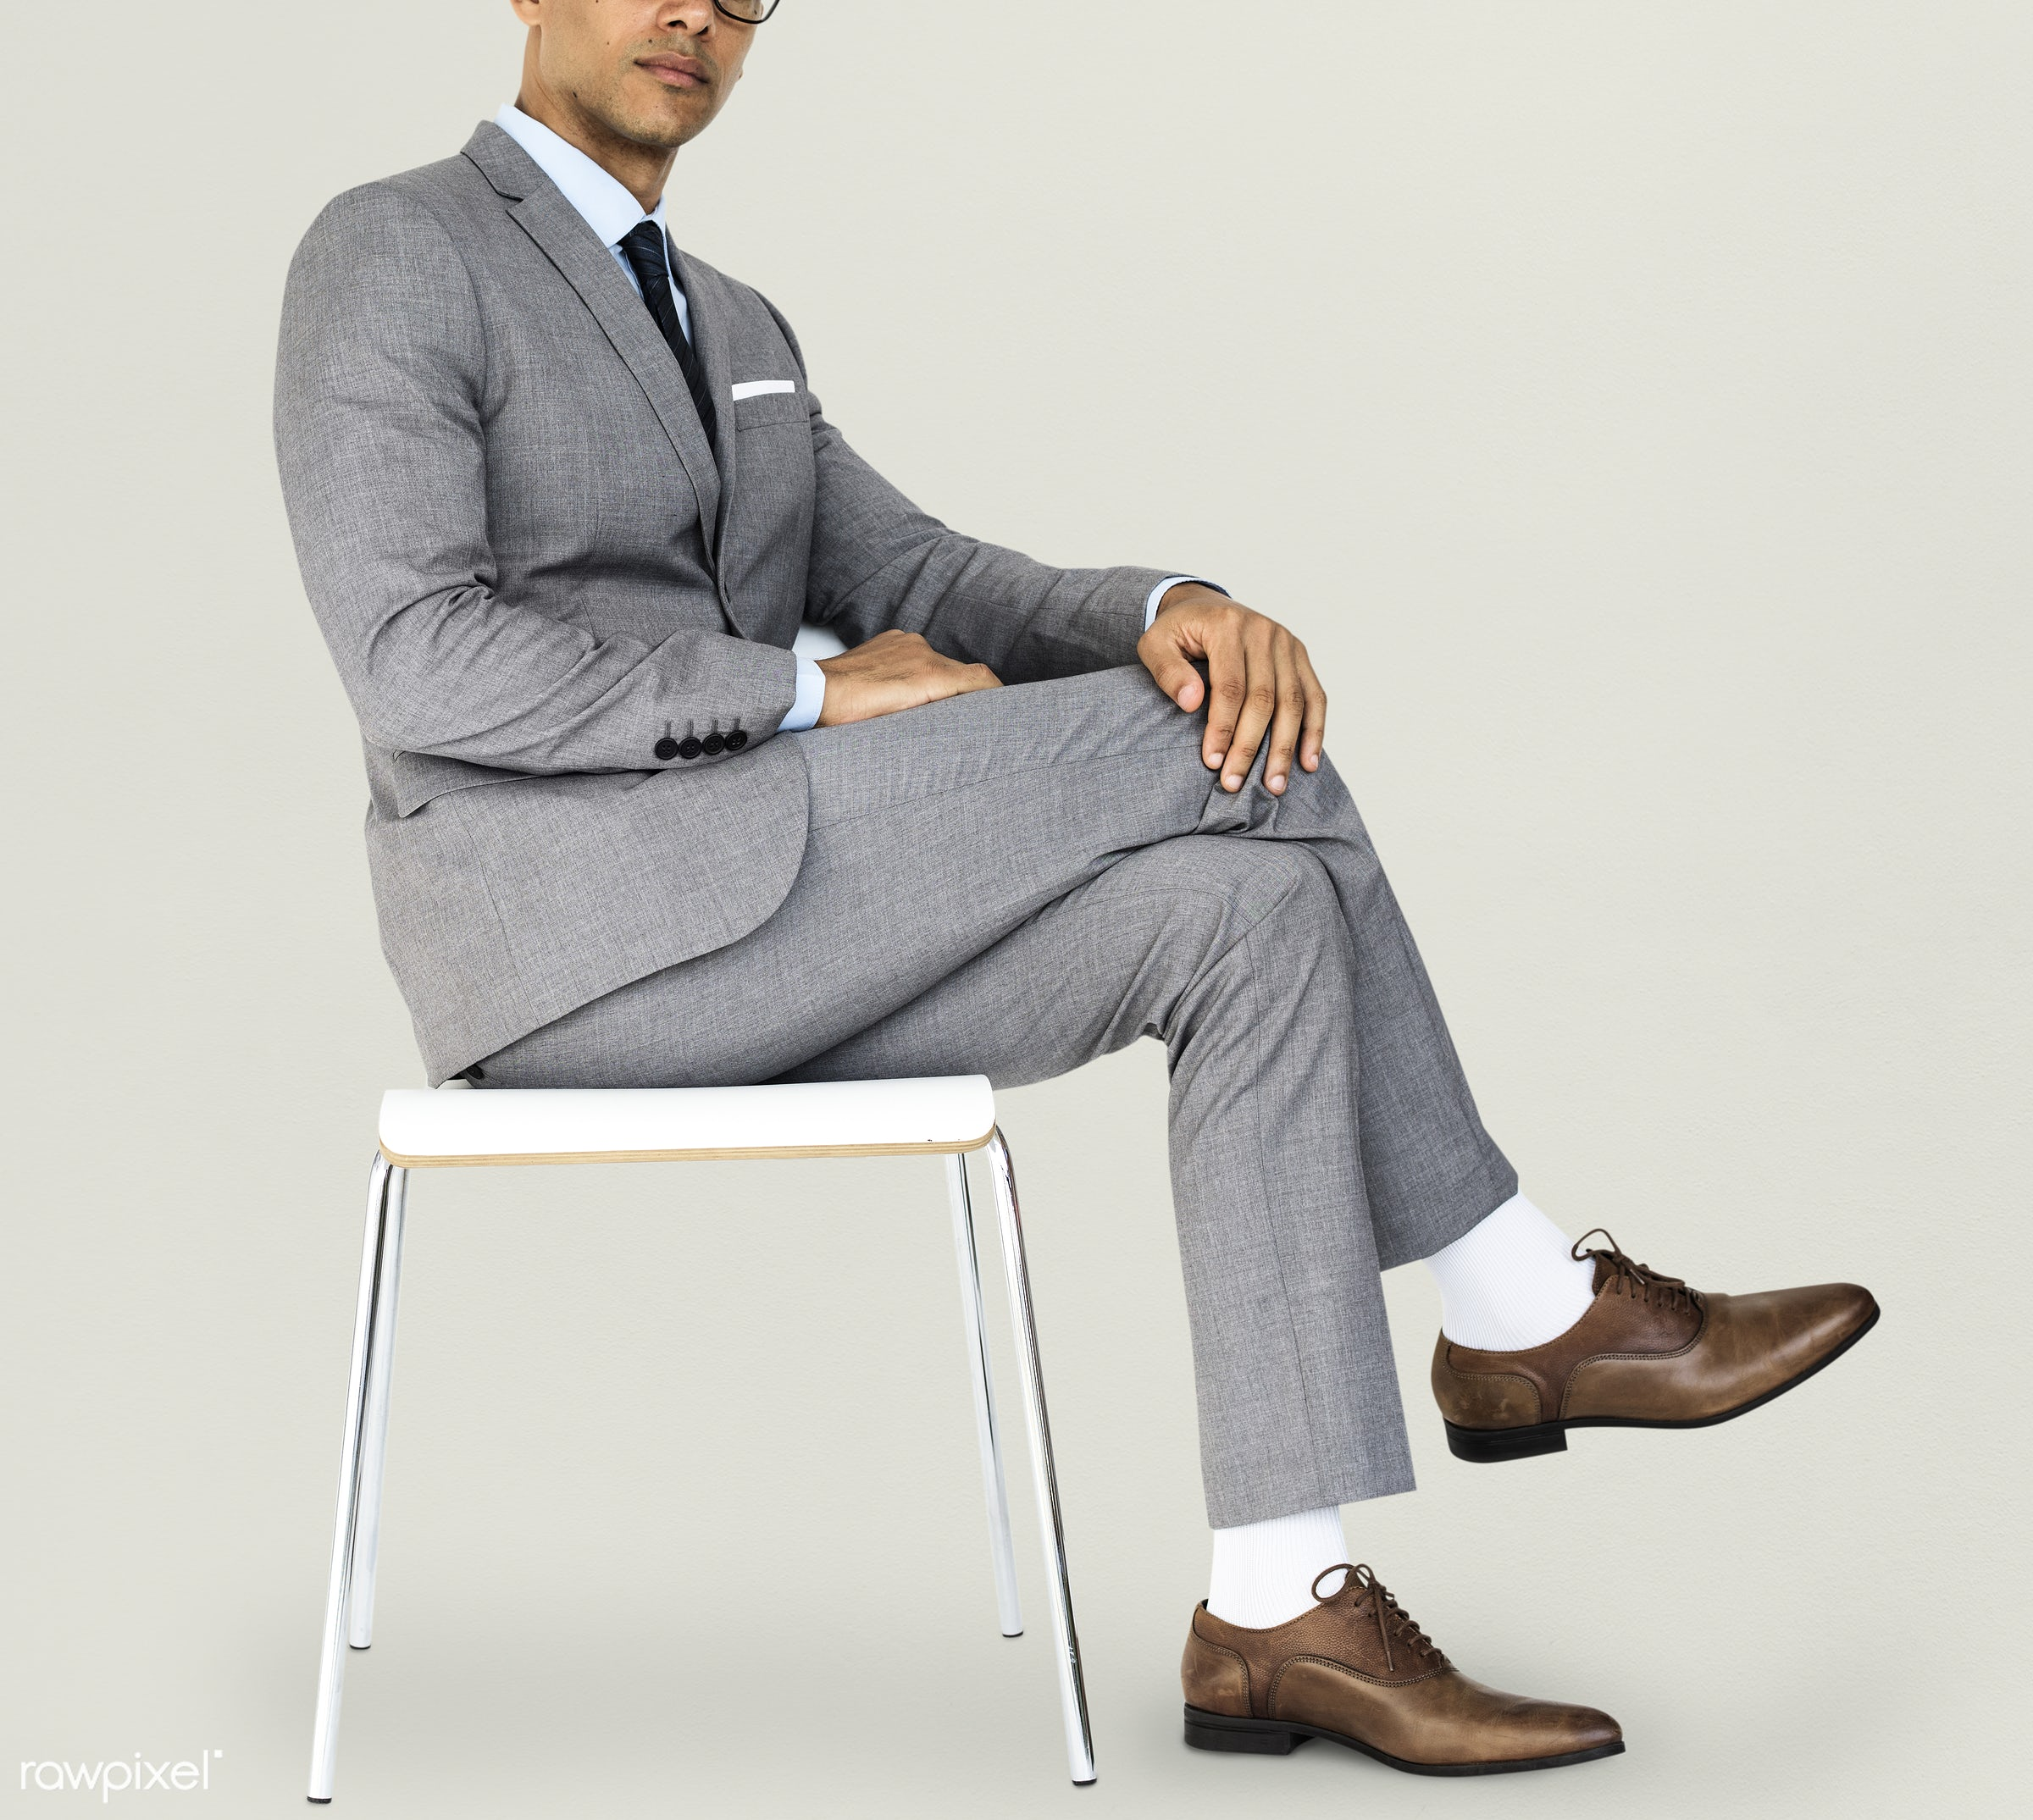 studio, expression, face, person, glasses, courage, carefree, people, business, businessman, fresh, casual, grey, mixed race...